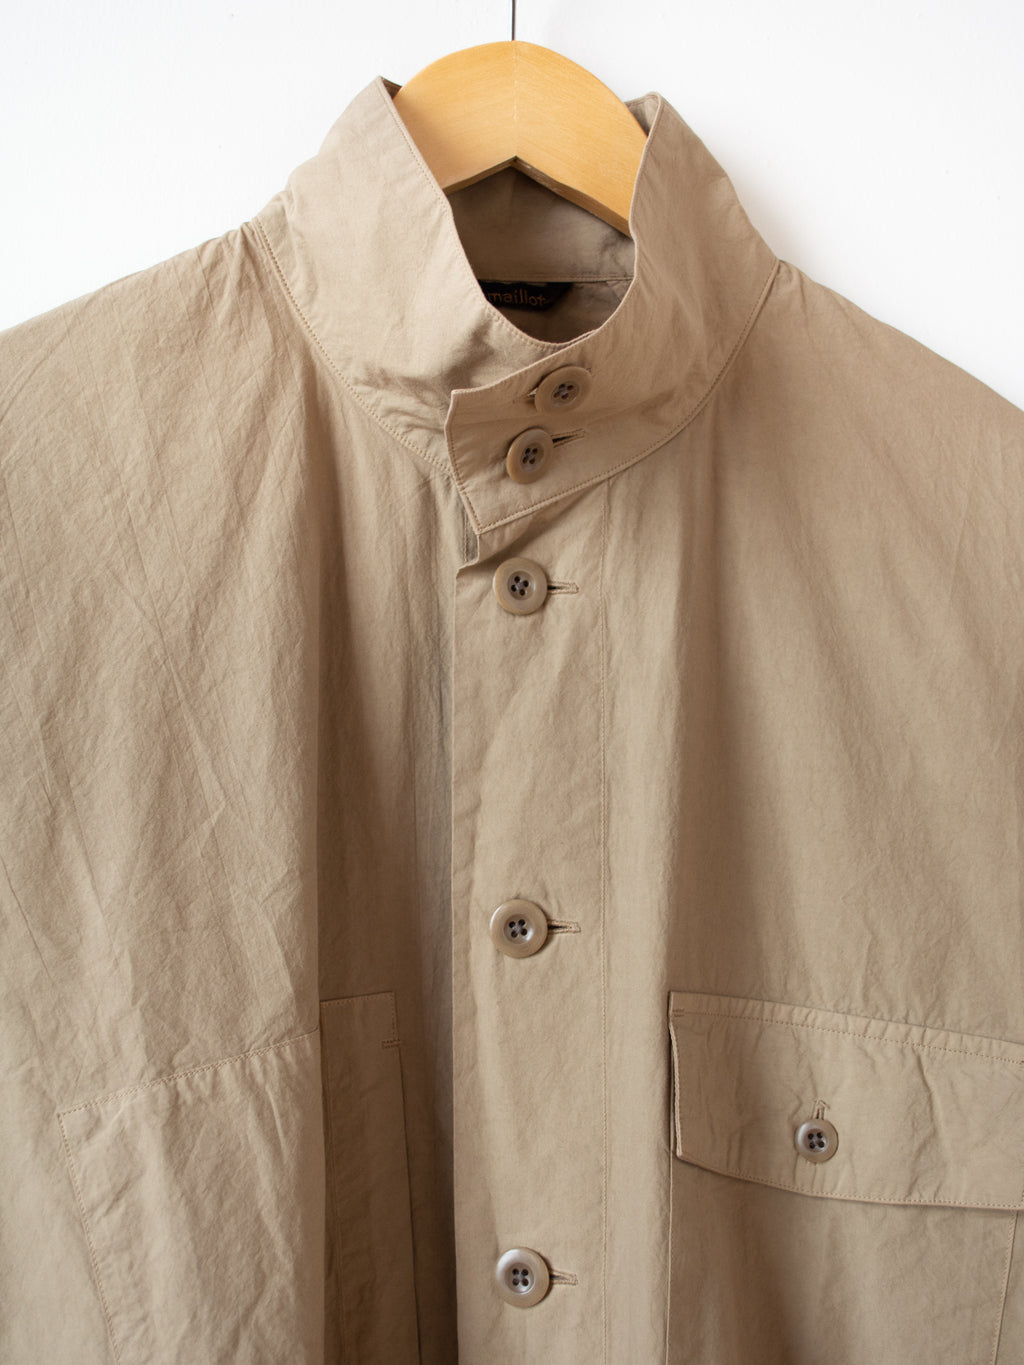 Mature Rub Cotton Long Work Shirt - Khaki